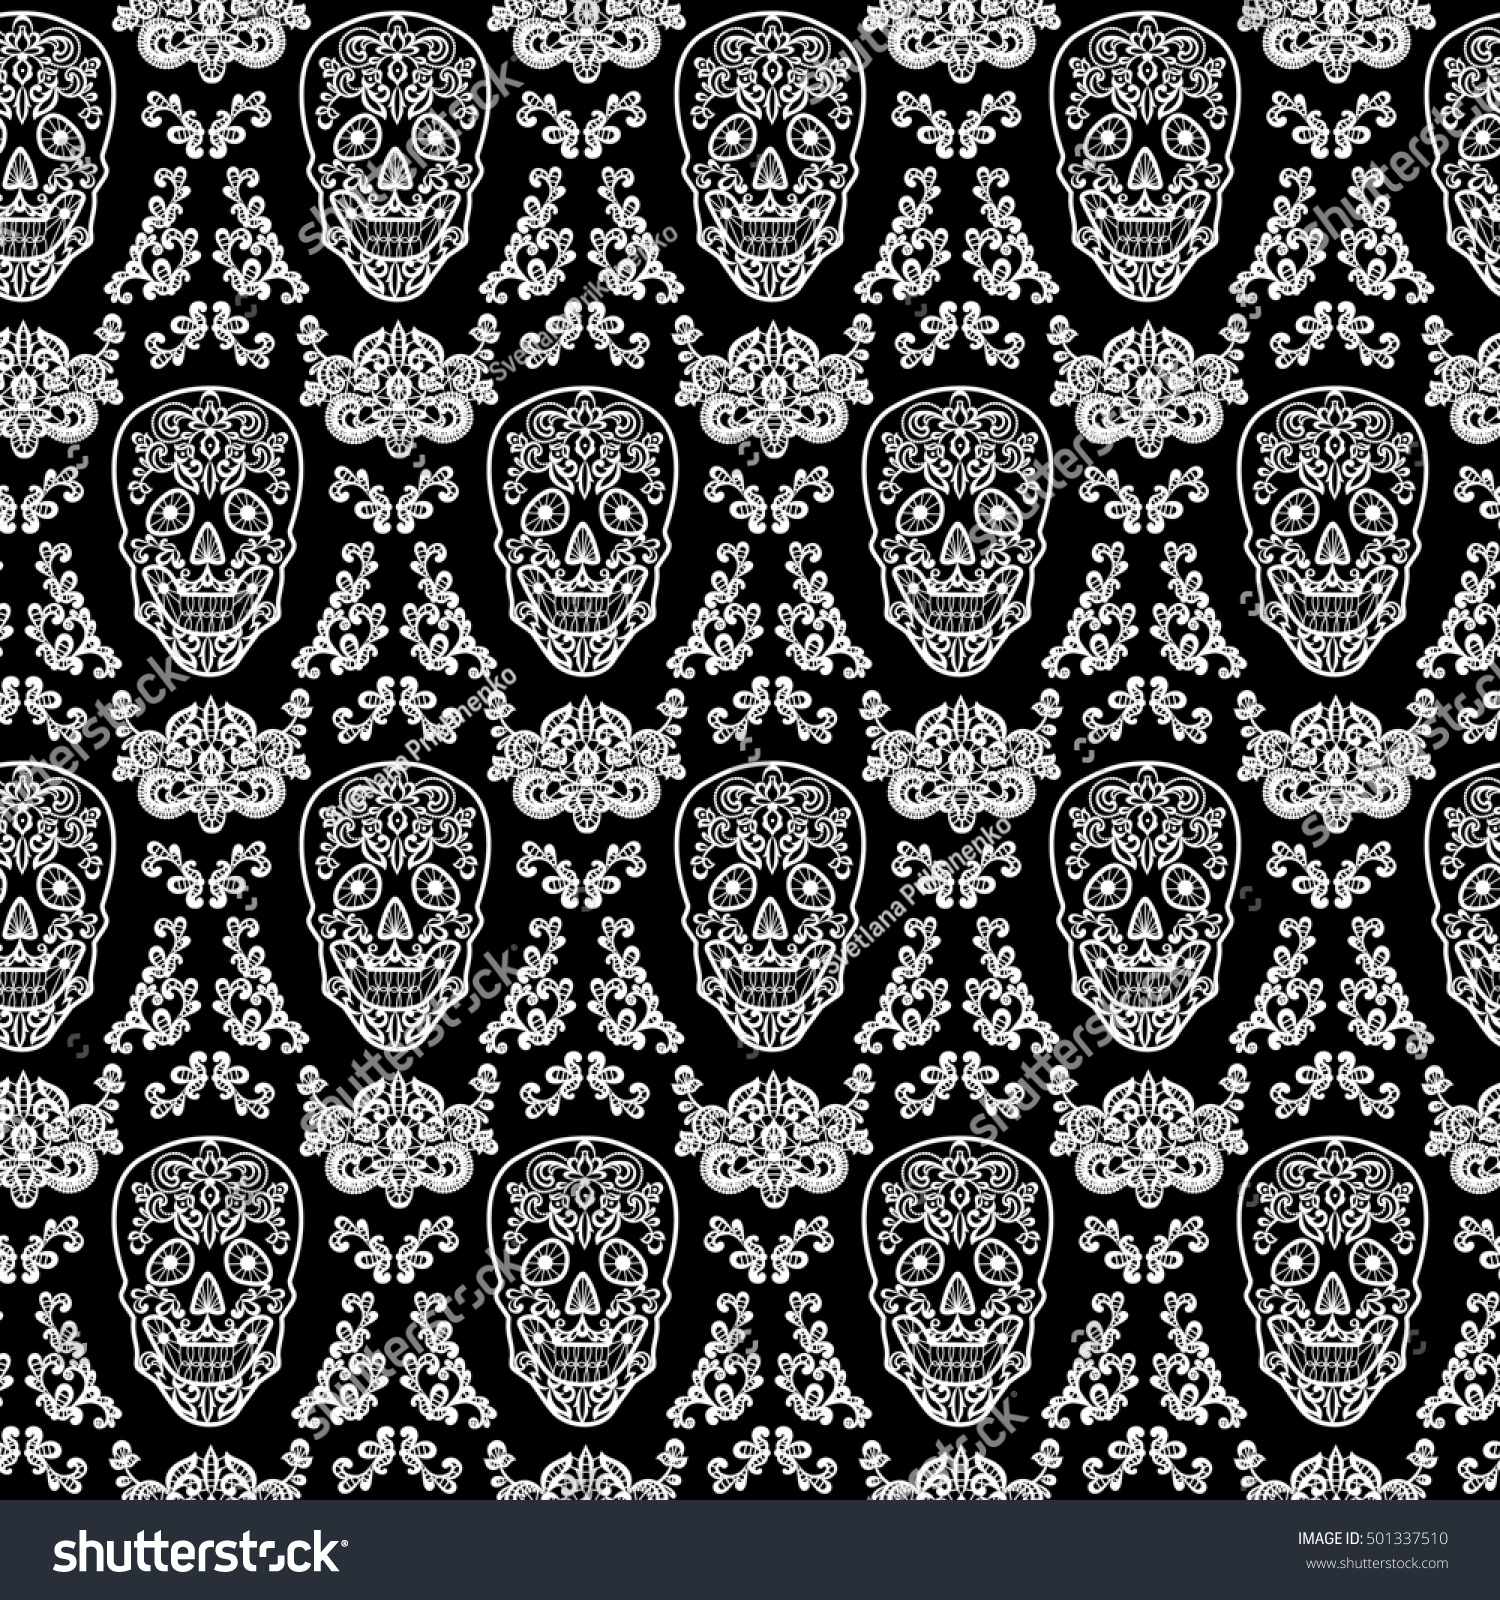 Day Of The Dead And Mexican Dia Los Muertos Background Black Lace